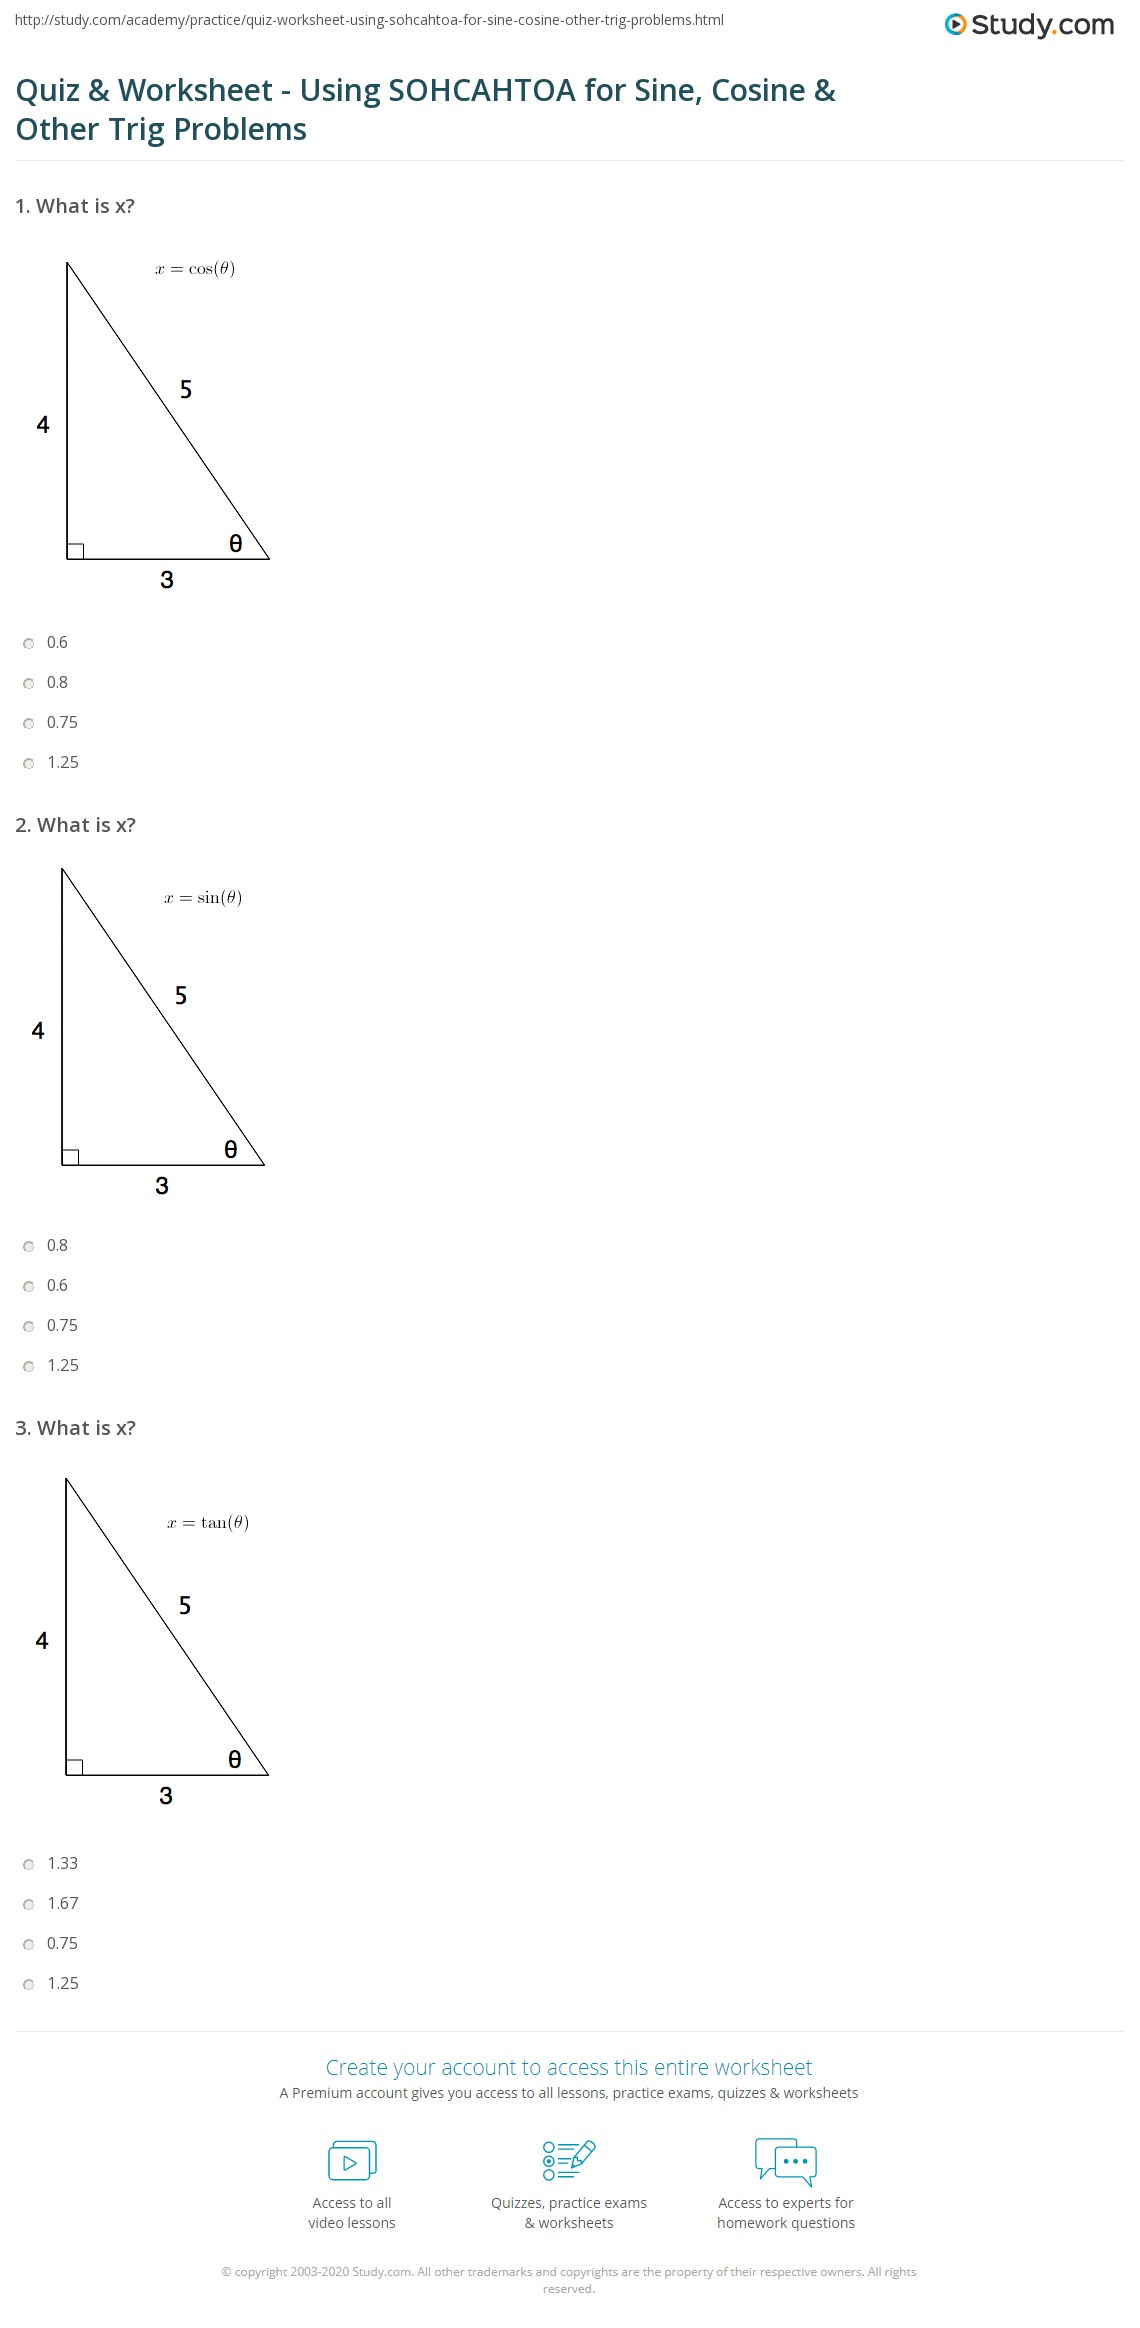 worksheet Trigonometry Worksheets Pdf quiz worksheet using sohcahtoa for sine cosine other trig print trigonometry and worksheet